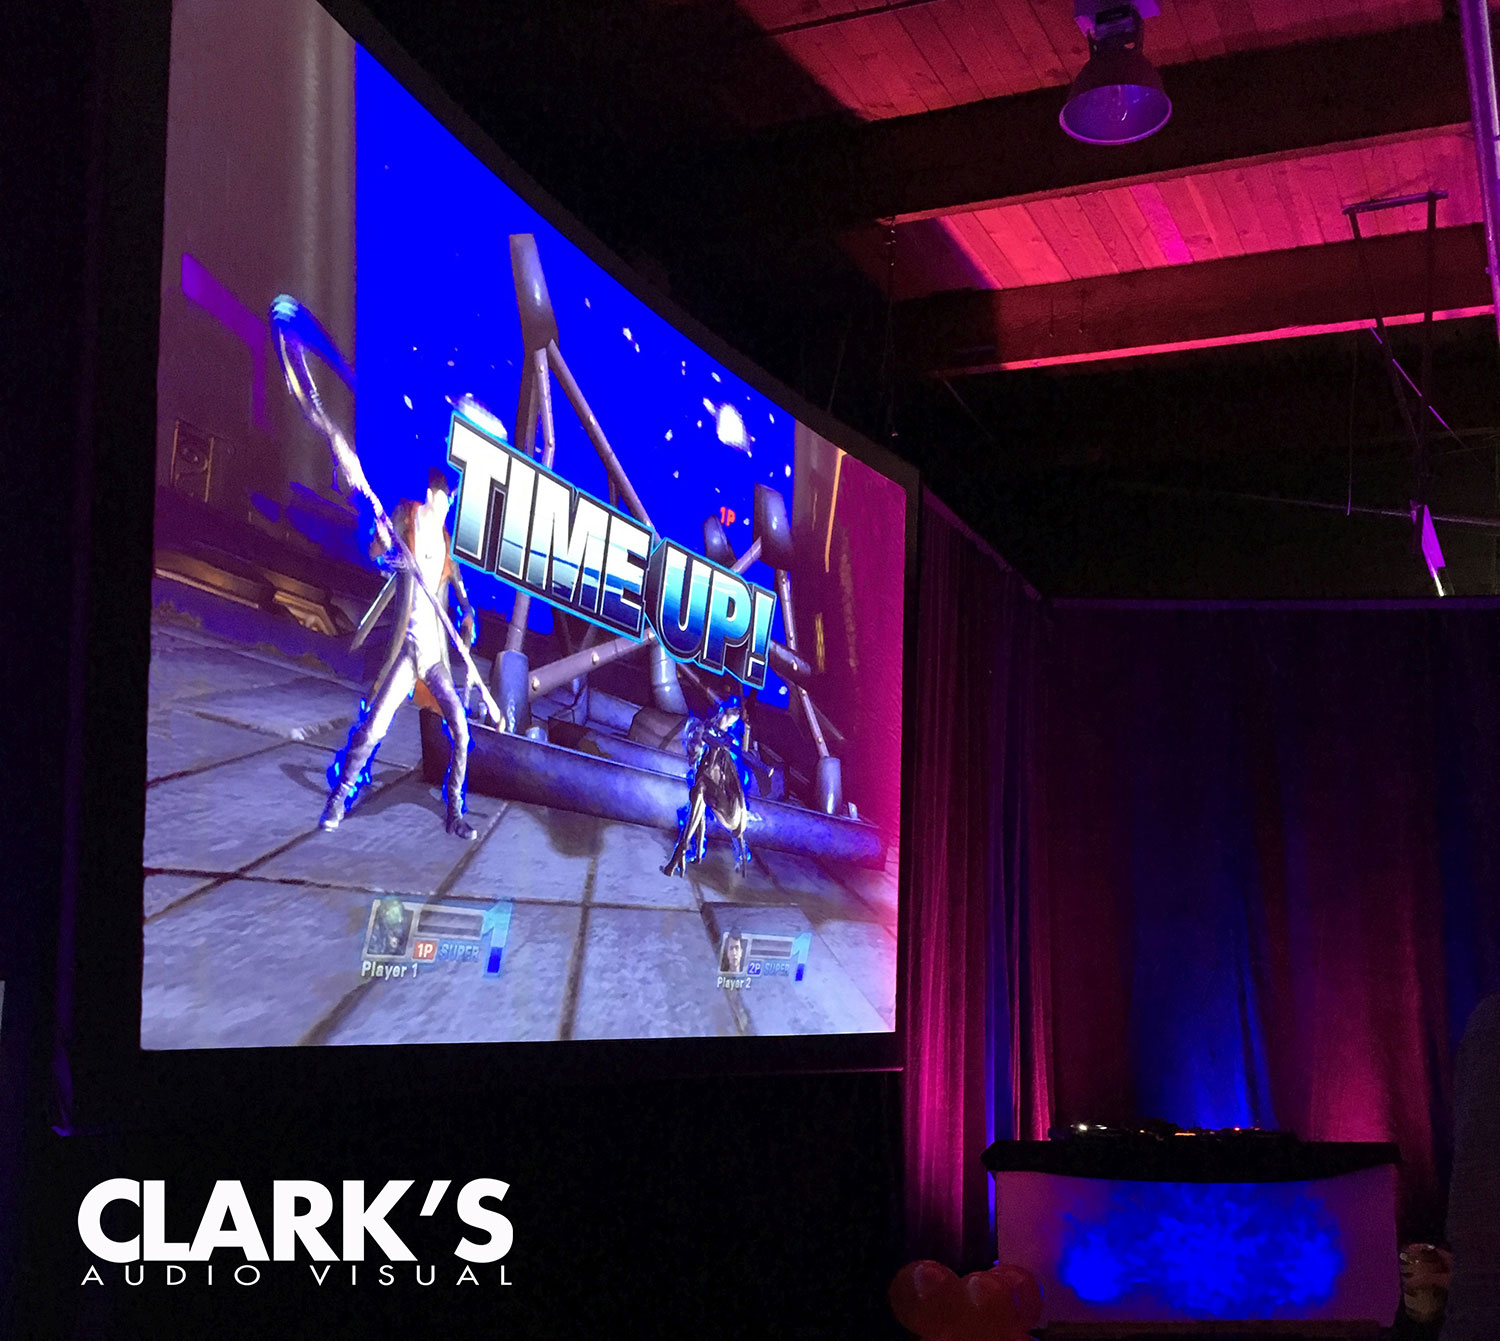 Clark's Audio Visual Projector Rentals